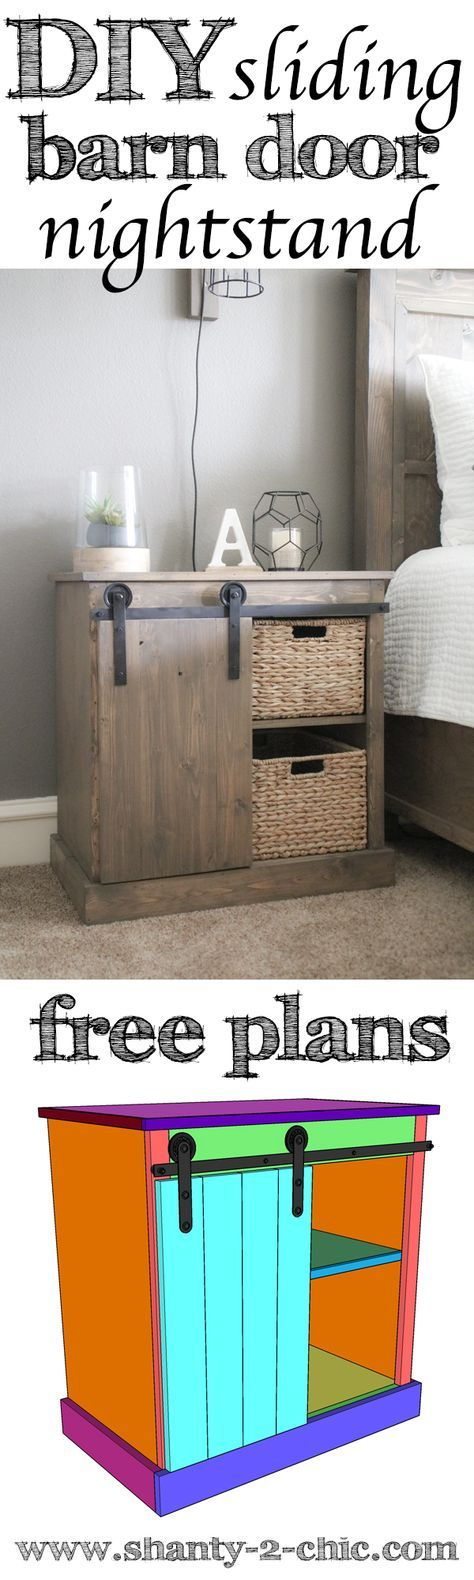 DIY Sliding Barn Door Nightstand plans and how-to video! Learn how to build this nightstand and the $20 DIY barn door hardware. Easy to customize and perfect for so many places in your home! We love barn doors and love fining unique ways to incorporate them on furniture pieces. Visit www.shanty-2-chic.com for the free plans and how-to video. Found this at hobby lobby